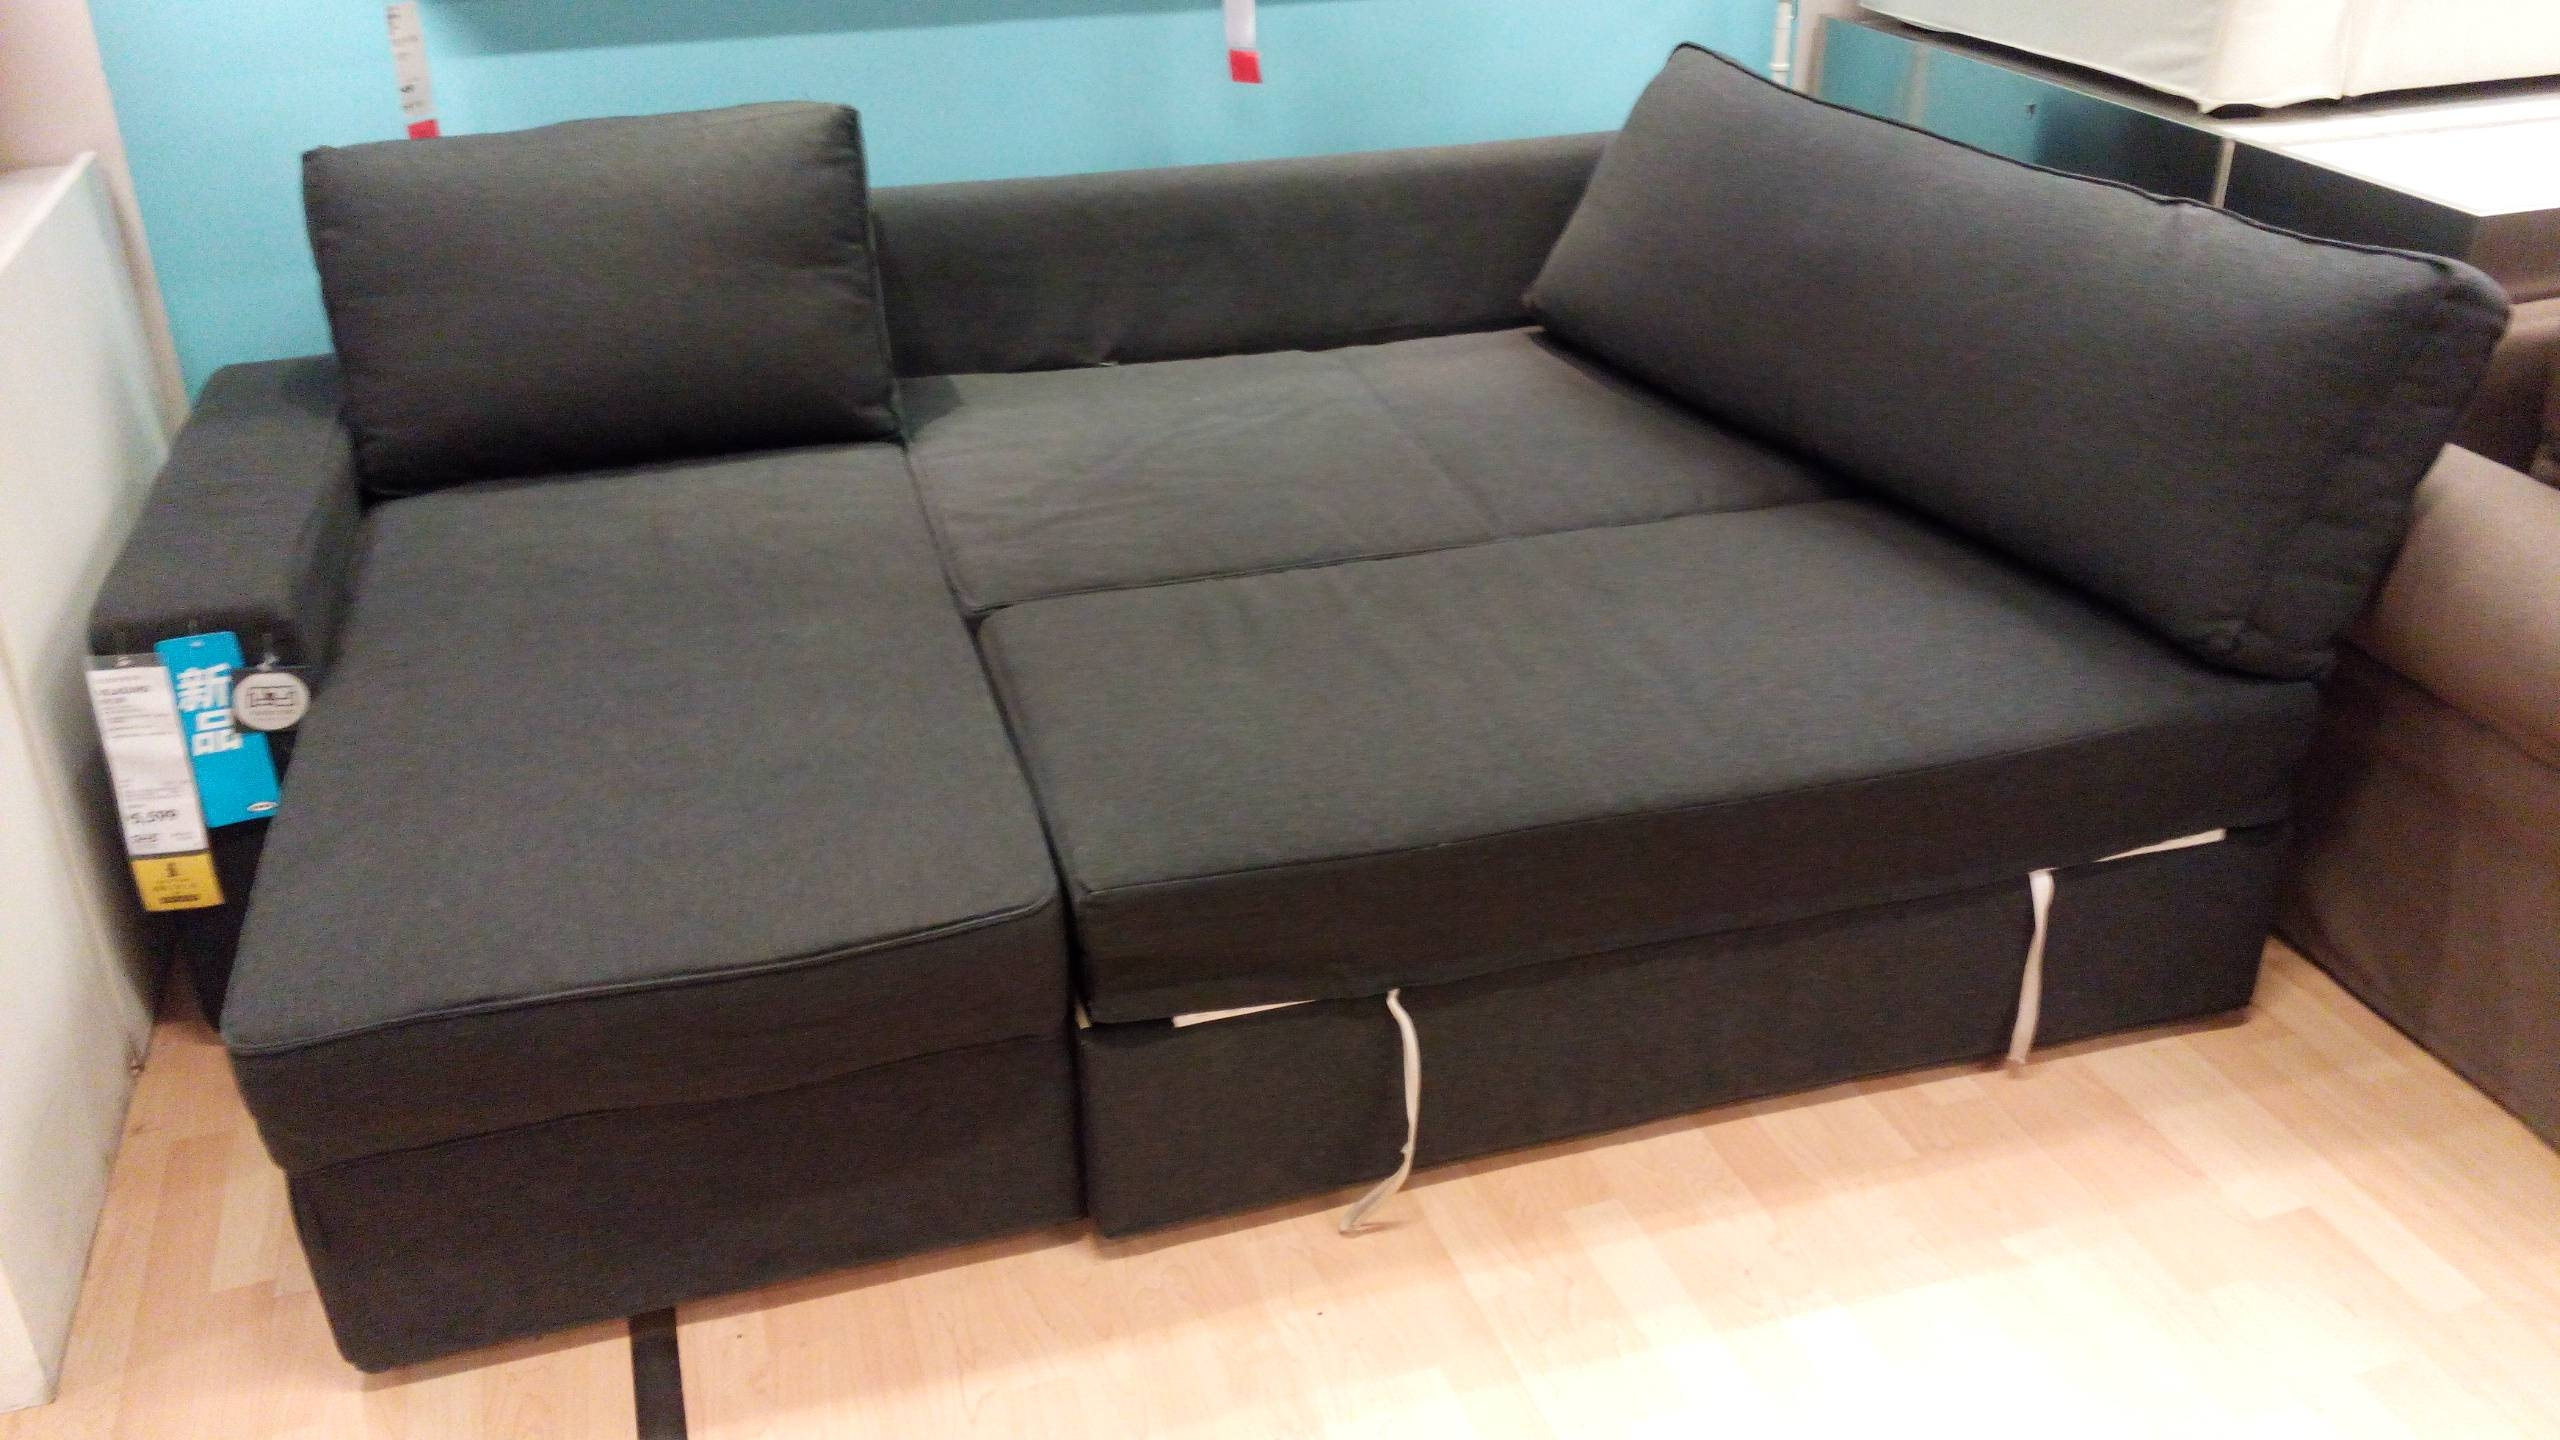 Ikea Vilasund And Backabro Review - Return Of The Sofa Bed Clones! with regard to Sofa Beds With Chaise Lounge (Image 7 of 15)